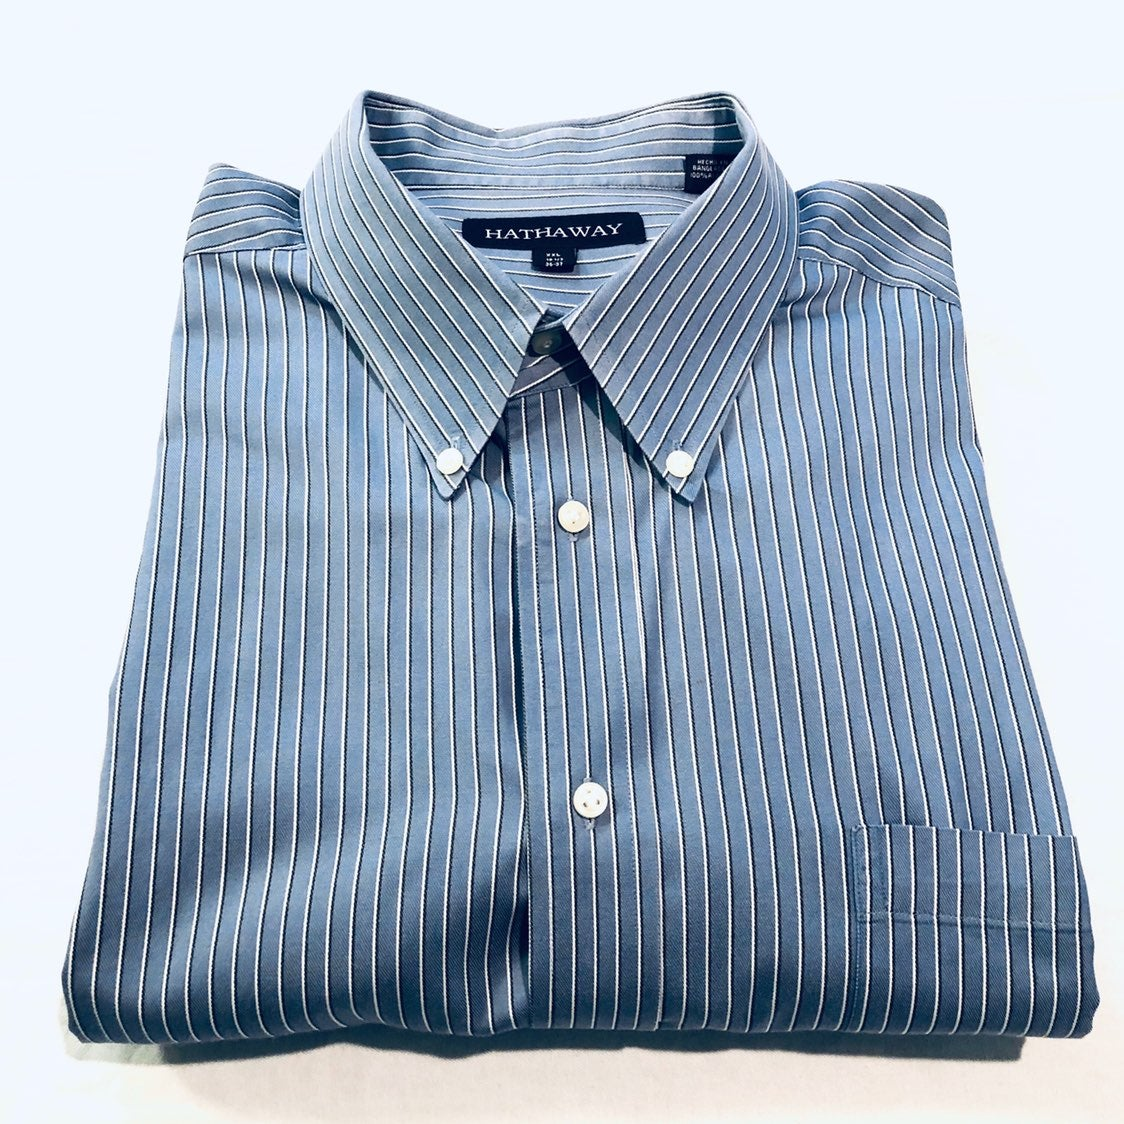 Hathaway Dress Shirt